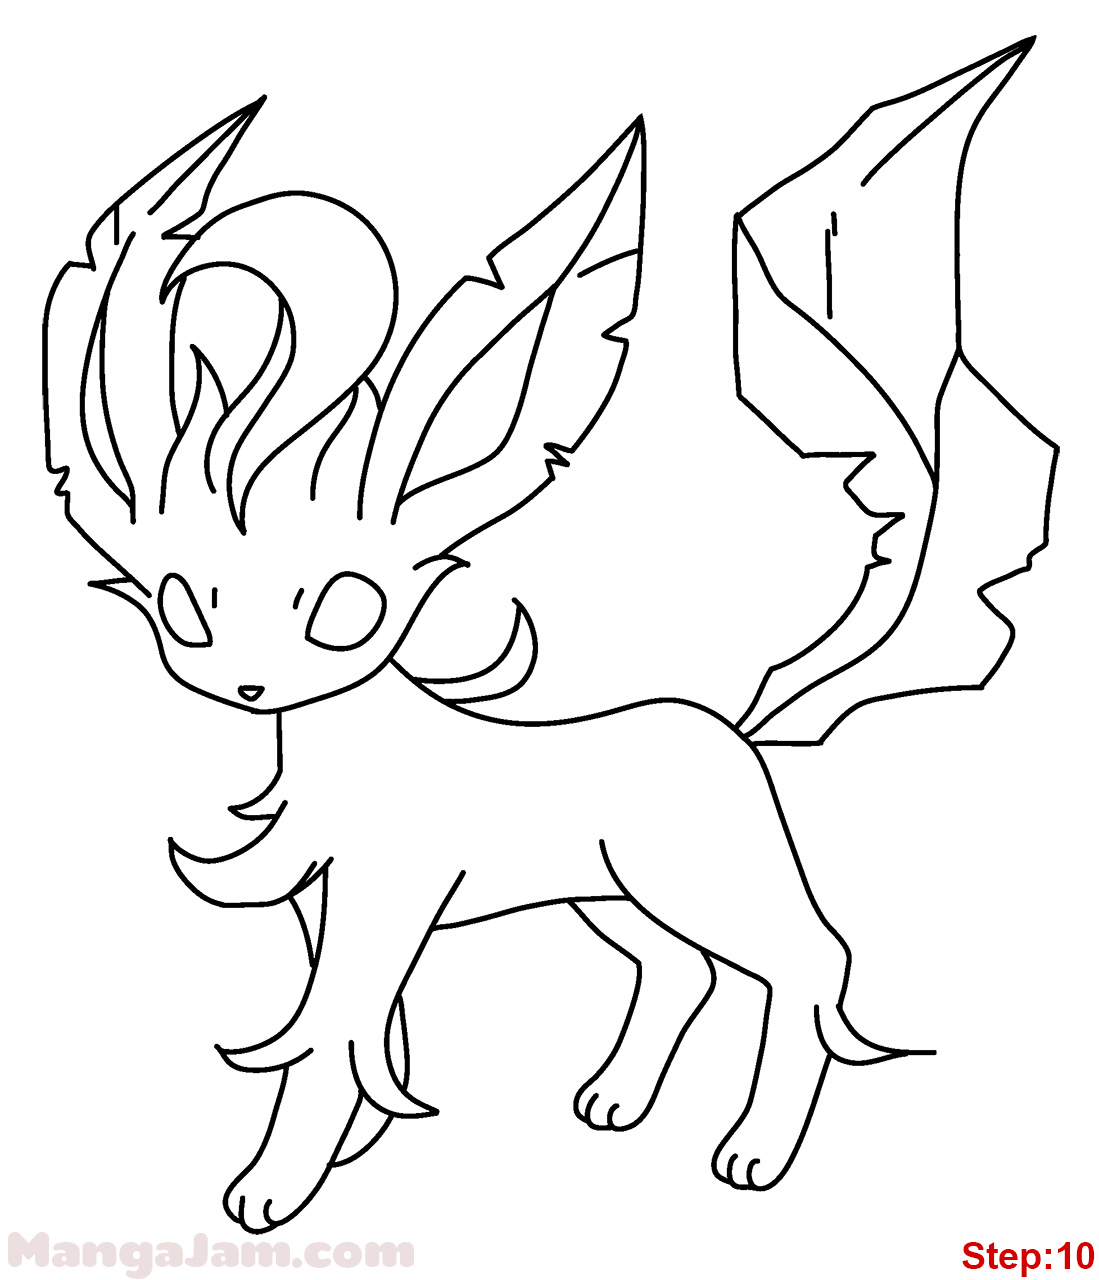 How To Draw Leafeon From Pokemon